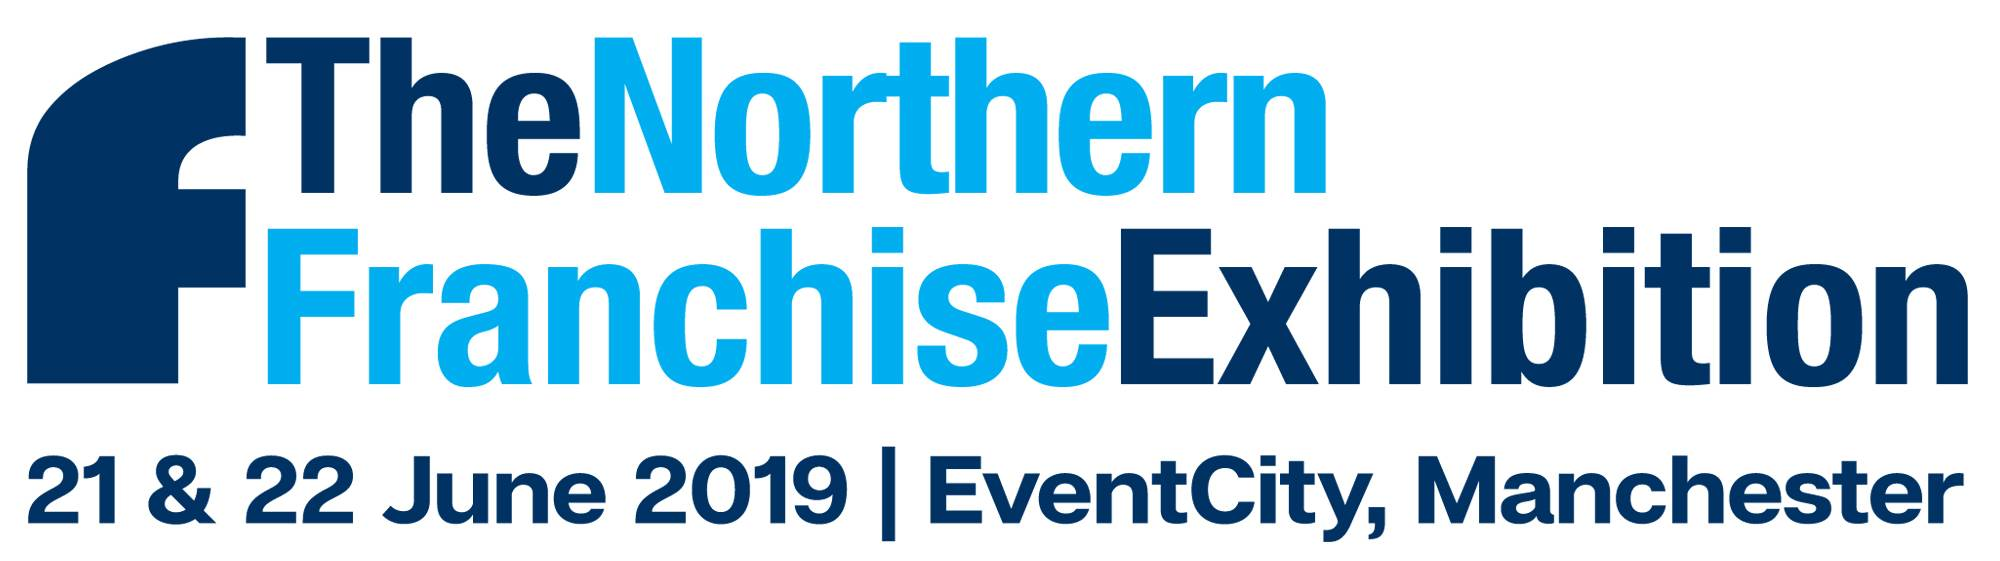 The Northern Franchise Exhibition 2019